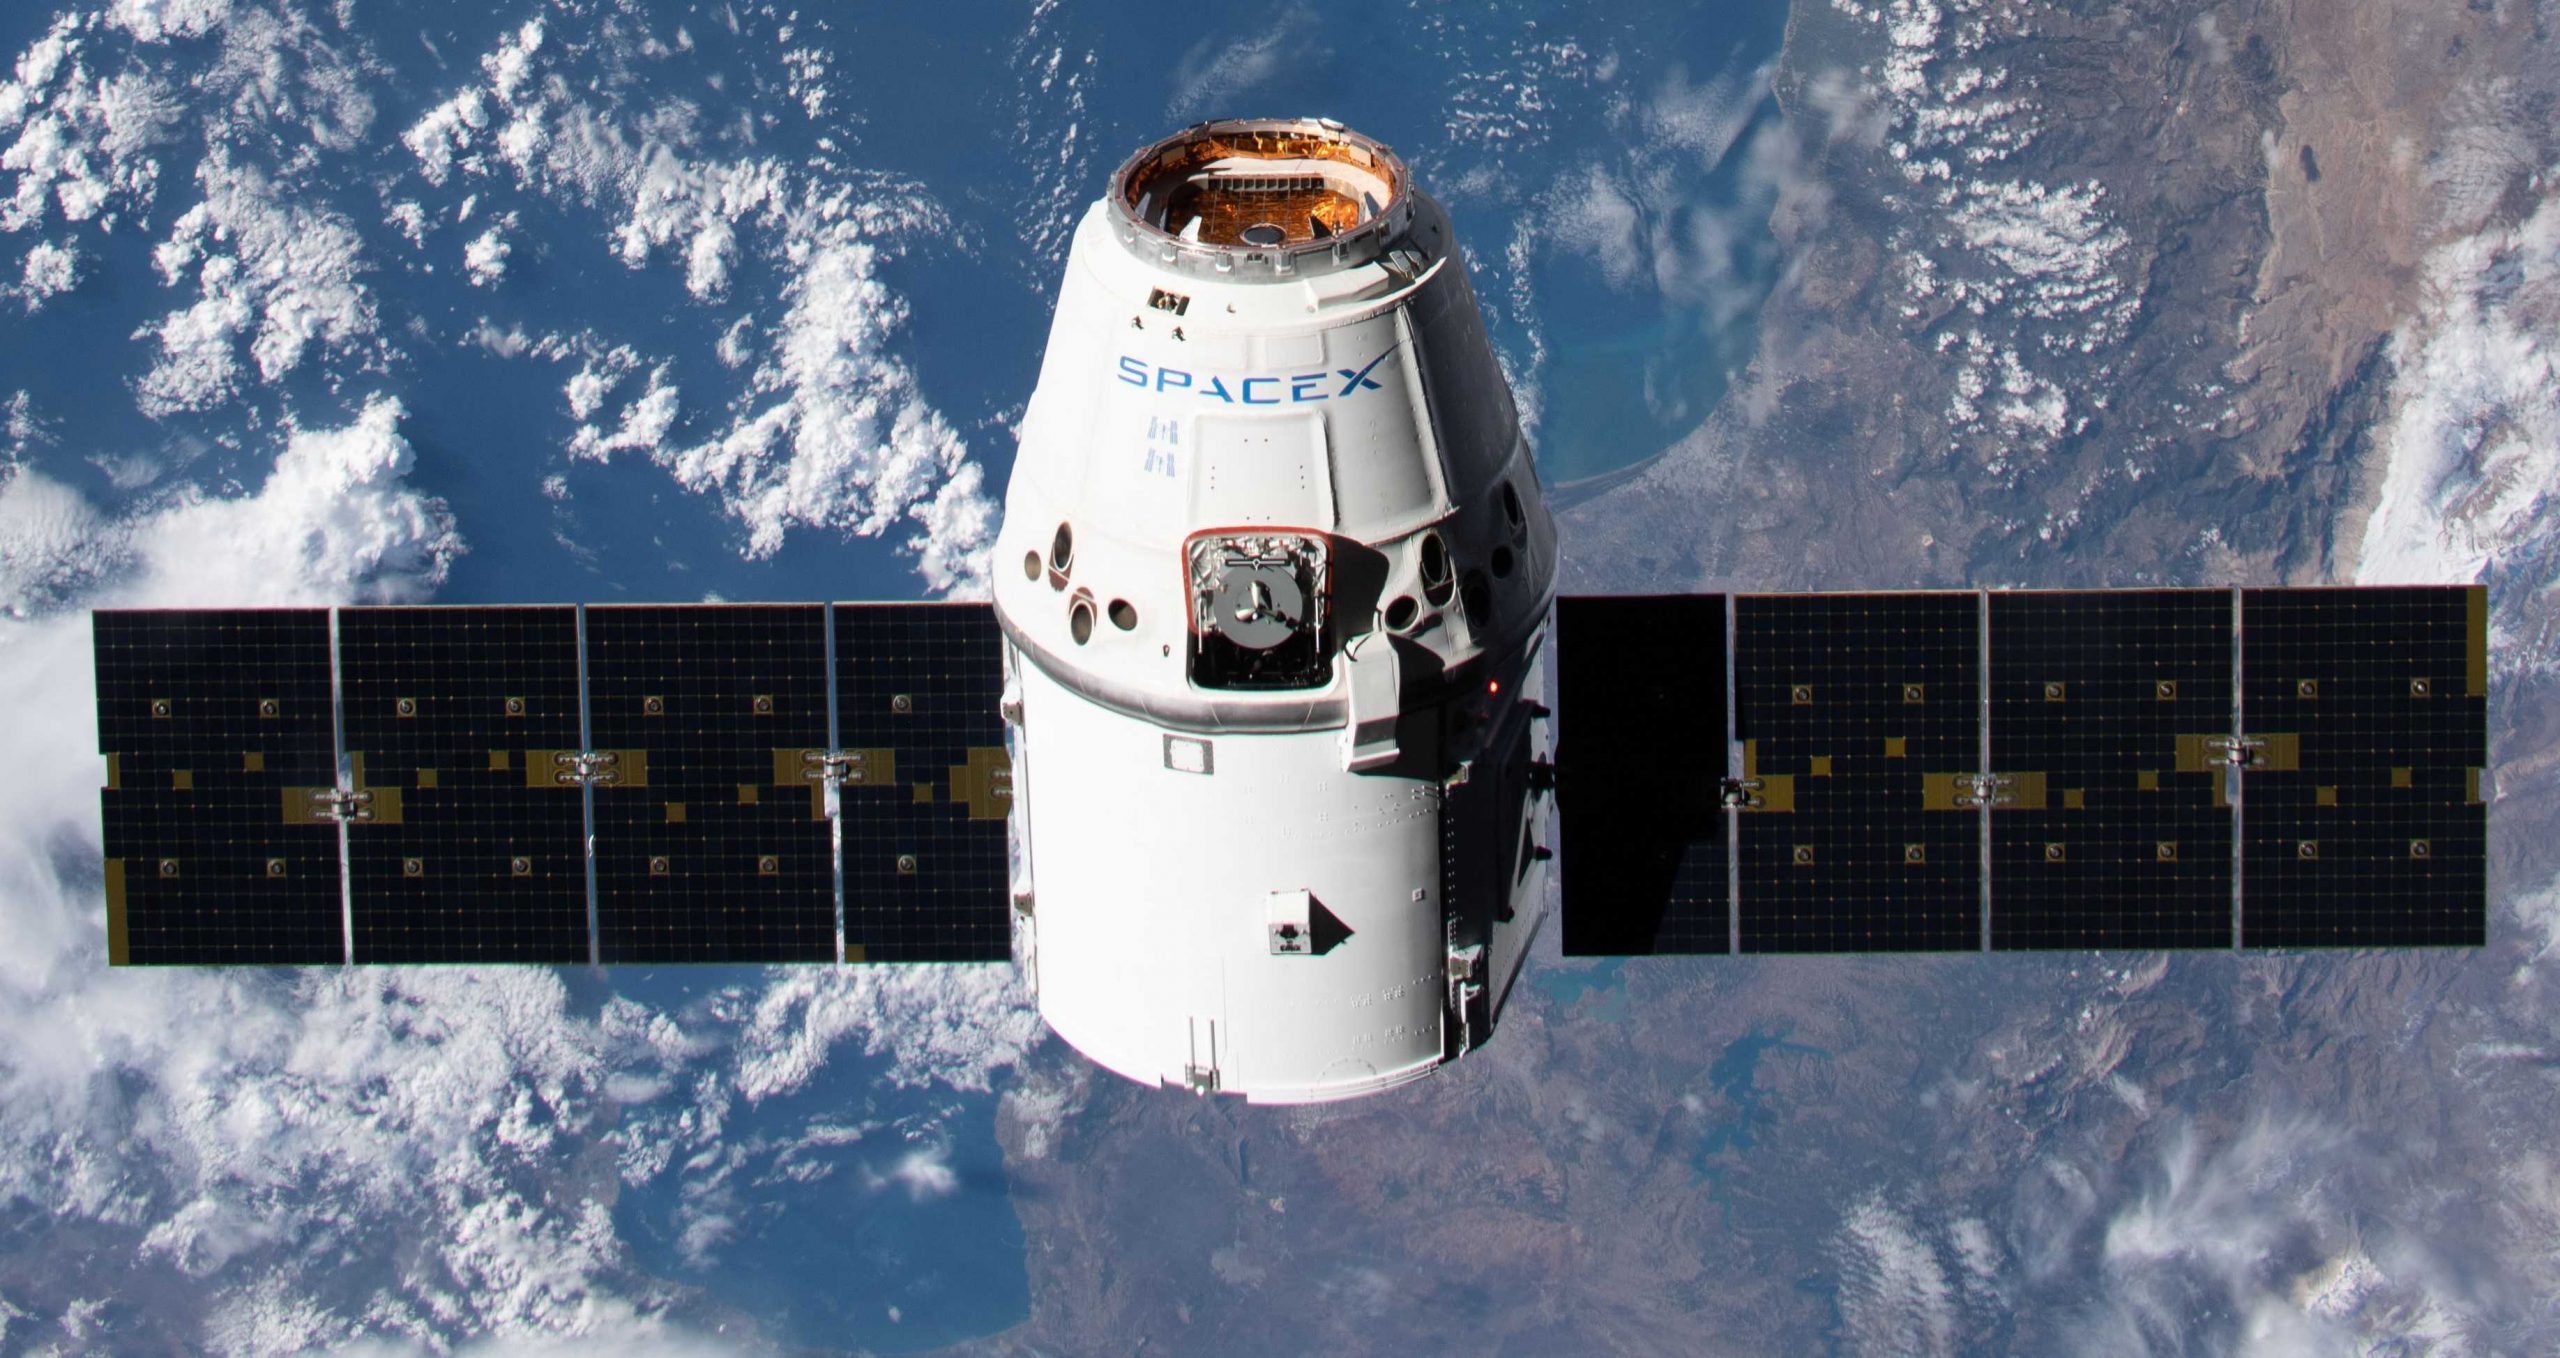 SpaceX Cargo Dragon spacecraft arrives at space station on